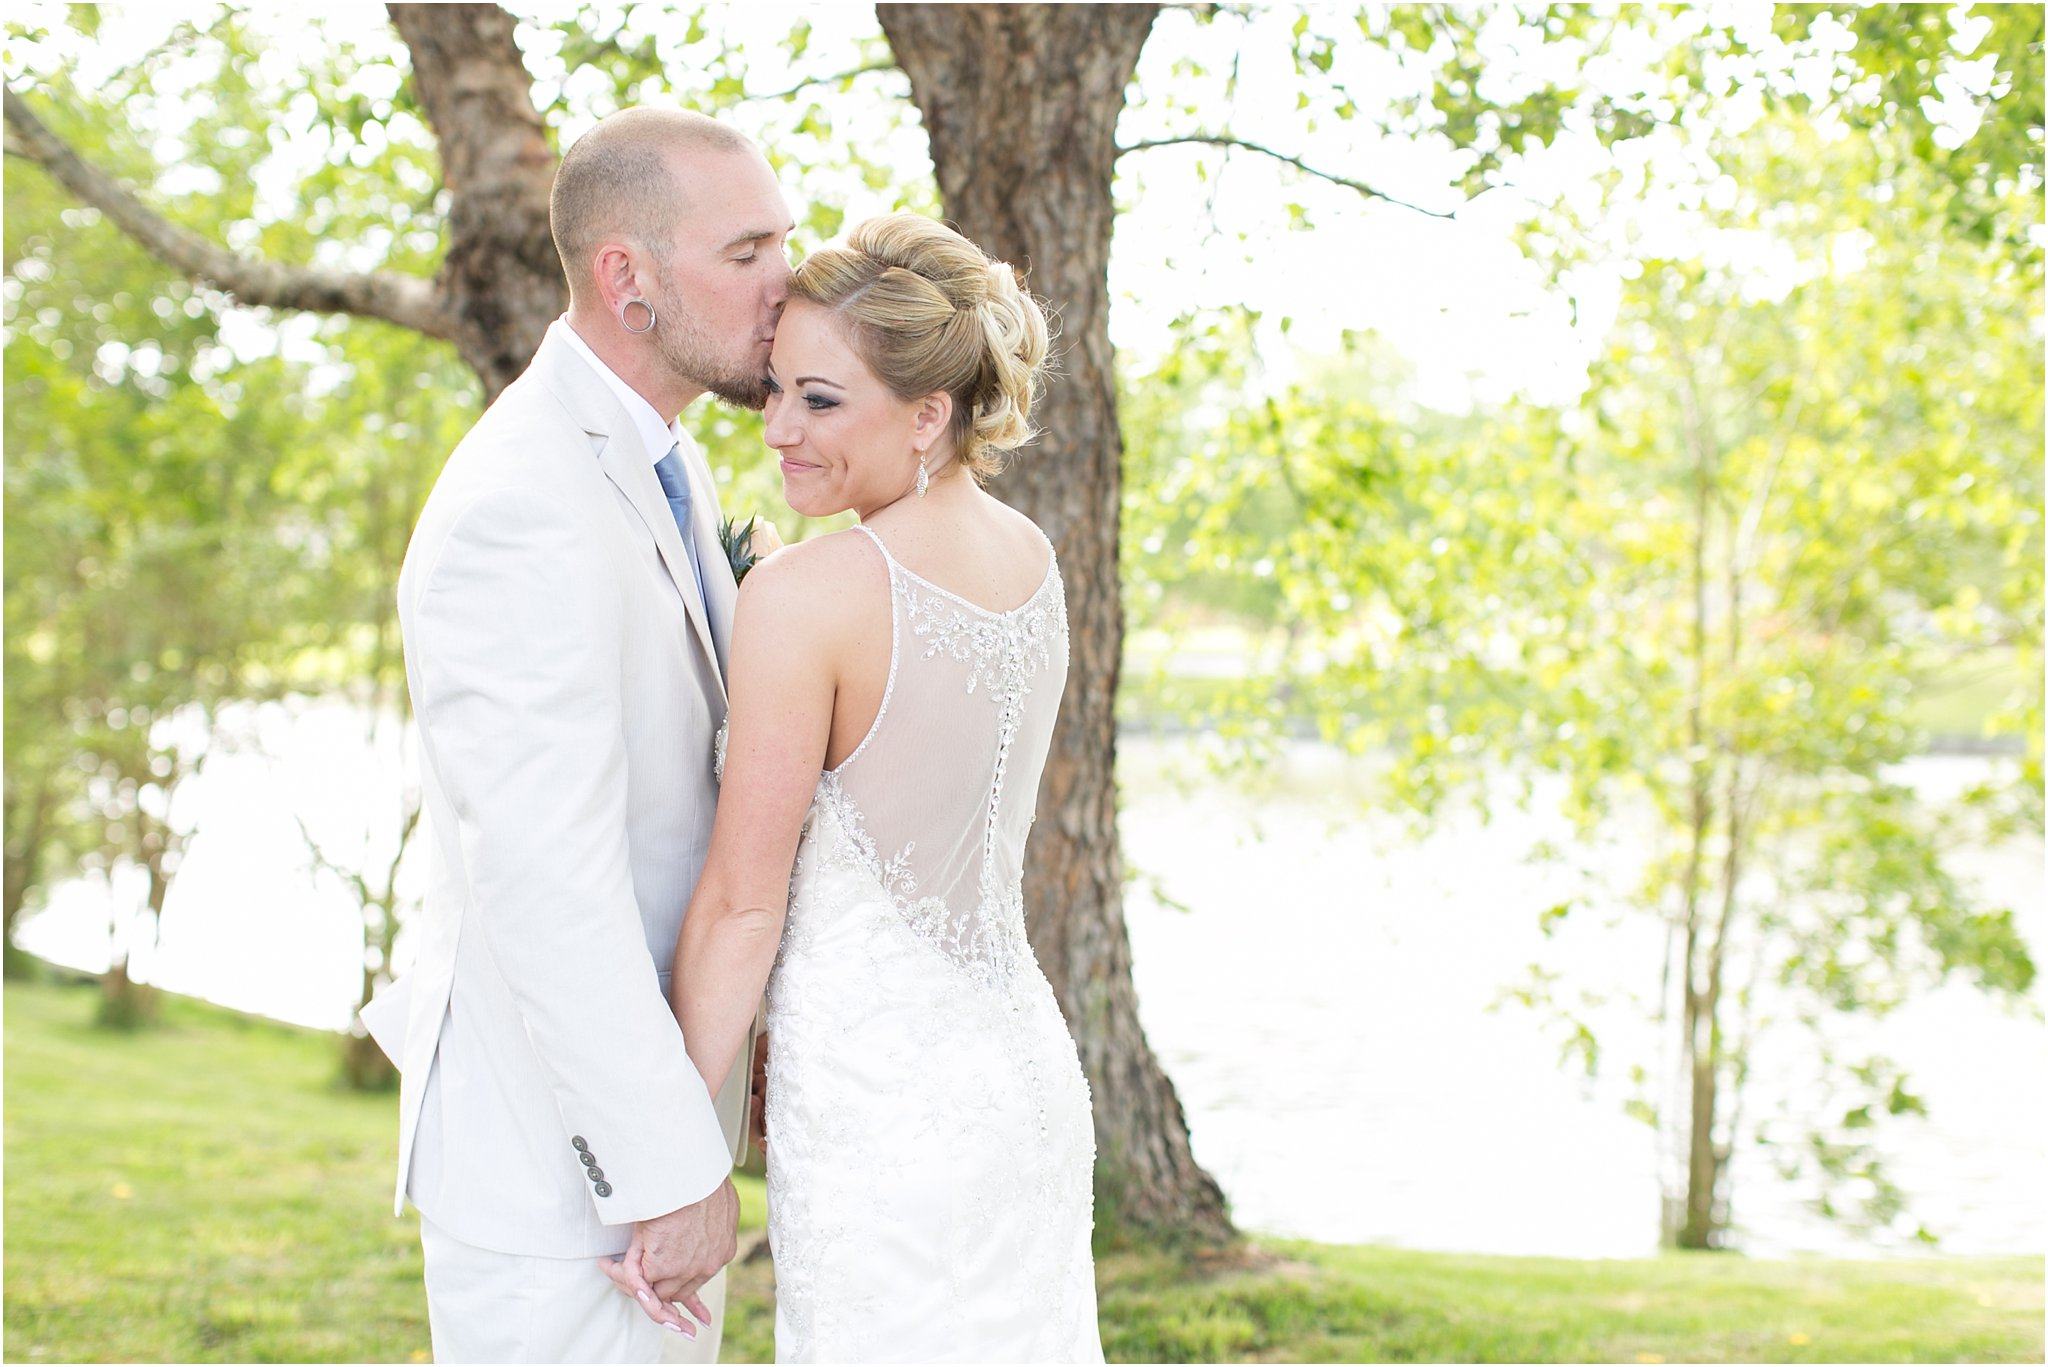 jessica_ryan_photography_virginia_virginiabeachweddingphotographer_studioIdo_backyardwedding_waterfrontwedding_1683